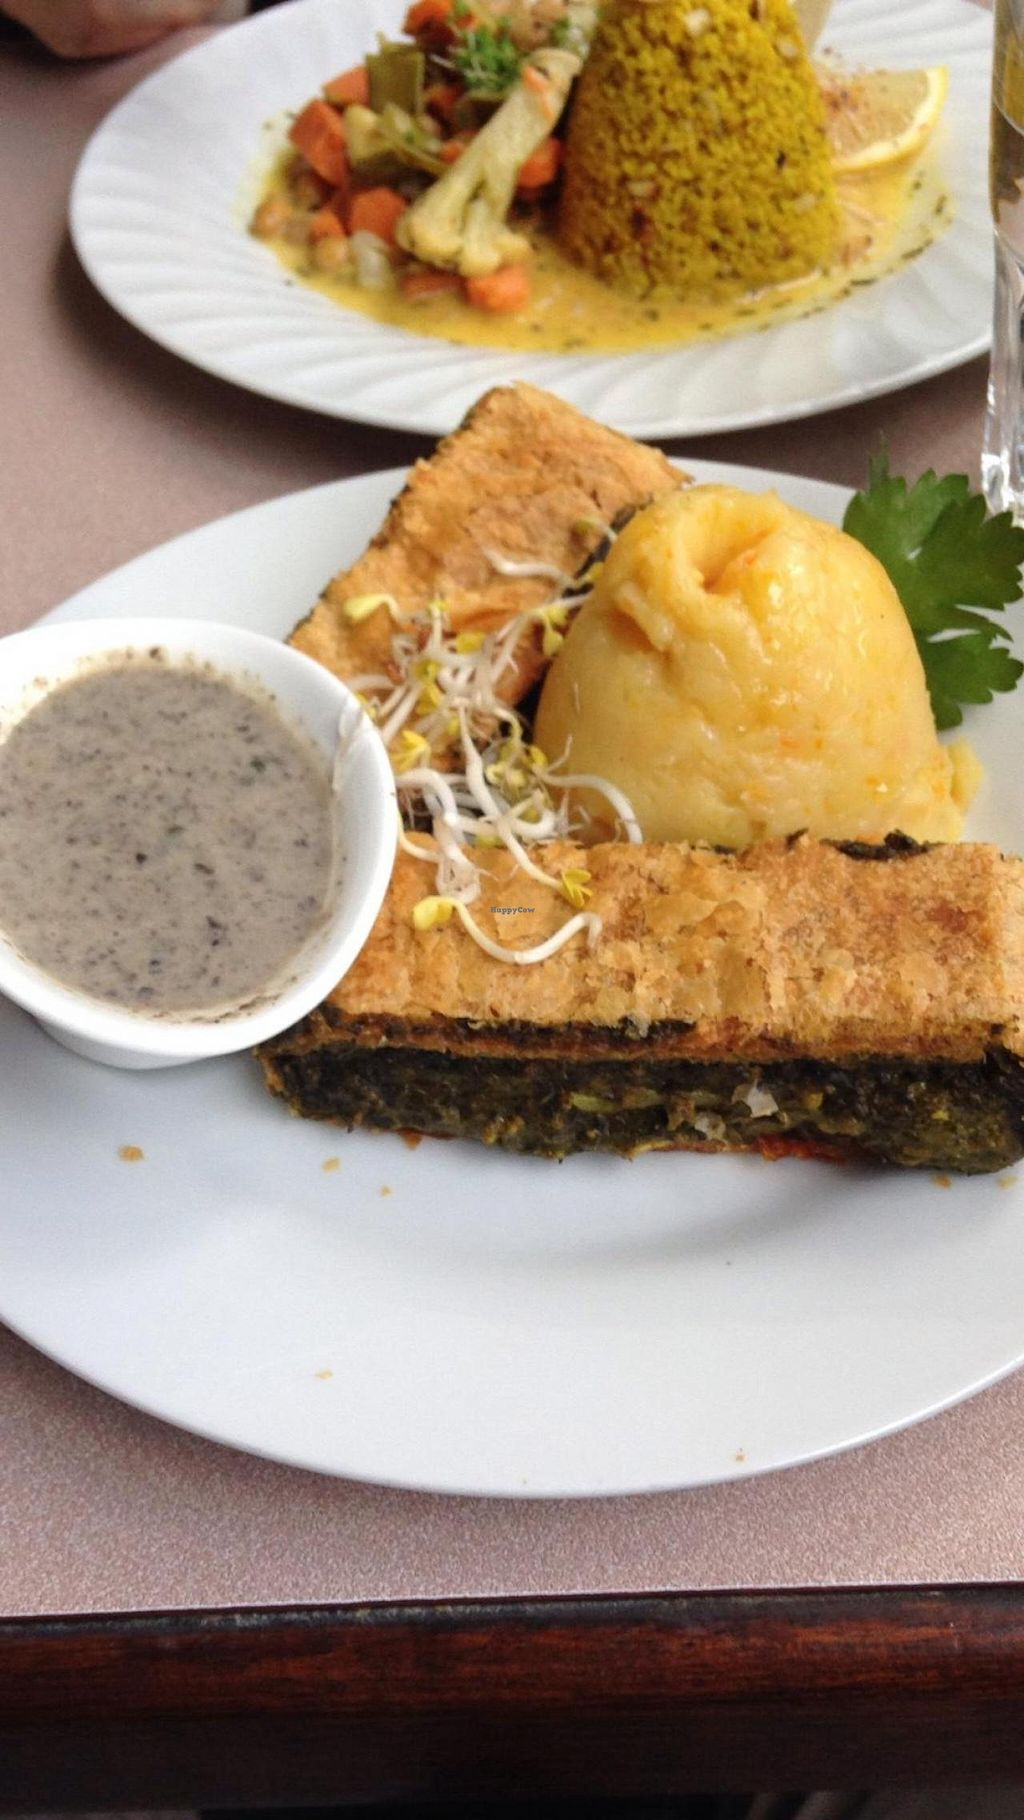 """Photo of Harvest Cafe Bistrot  by <a href=""""/members/profile/Leah%20Stolar"""">Leah Stolar</a> <br/>Daily Special - Mushroom Strudel <br/> July 16, 2014  - <a href='/contact/abuse/image/37469/74180'>Report</a>"""